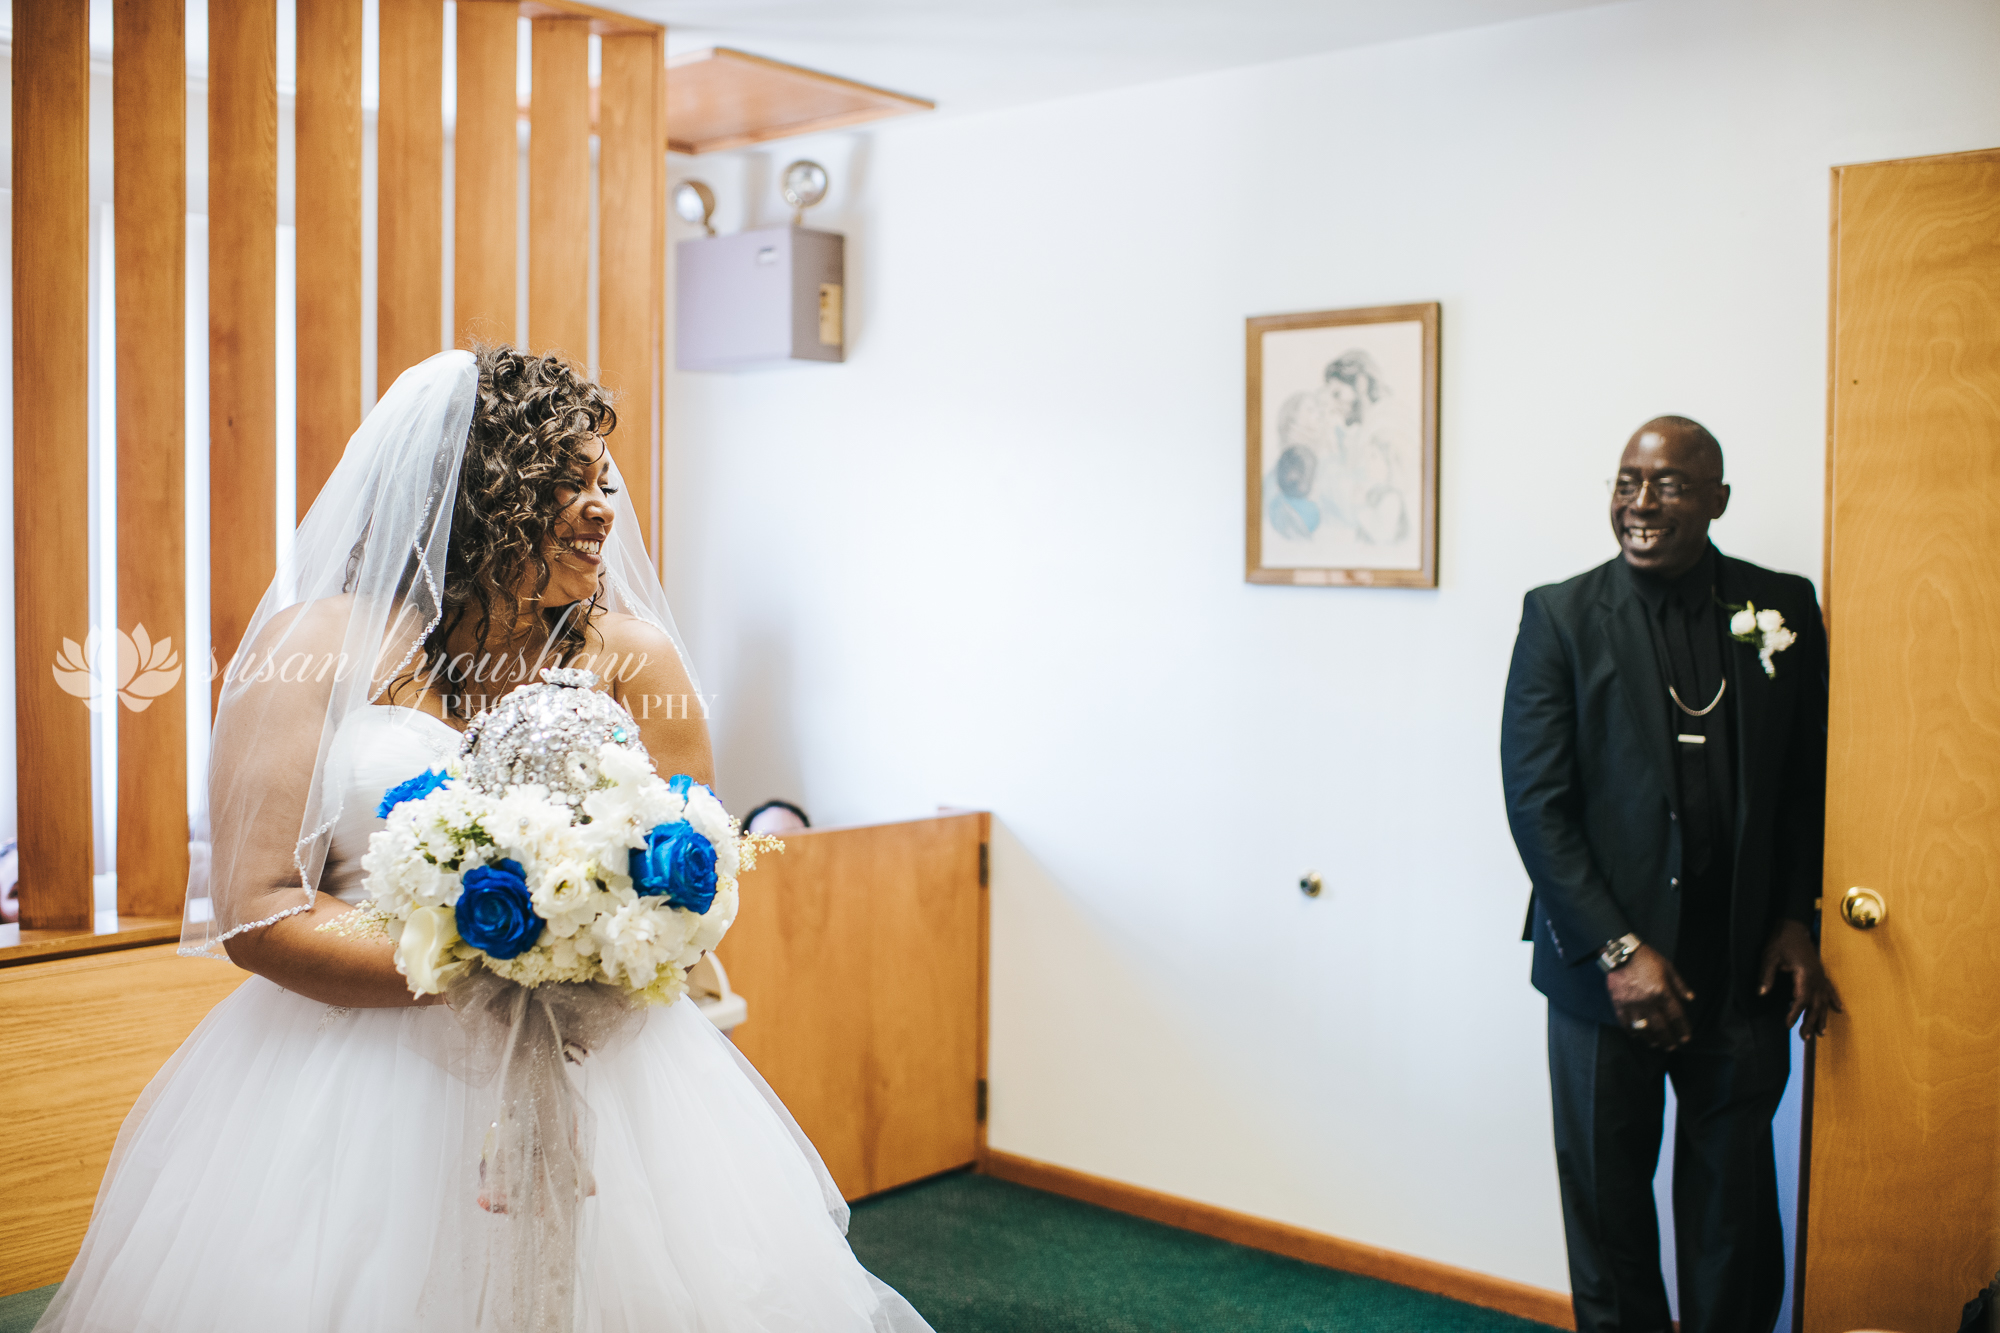 Katelyn and Wes Wedding Photos 07-13-2019 SLY Photography-31.jpg